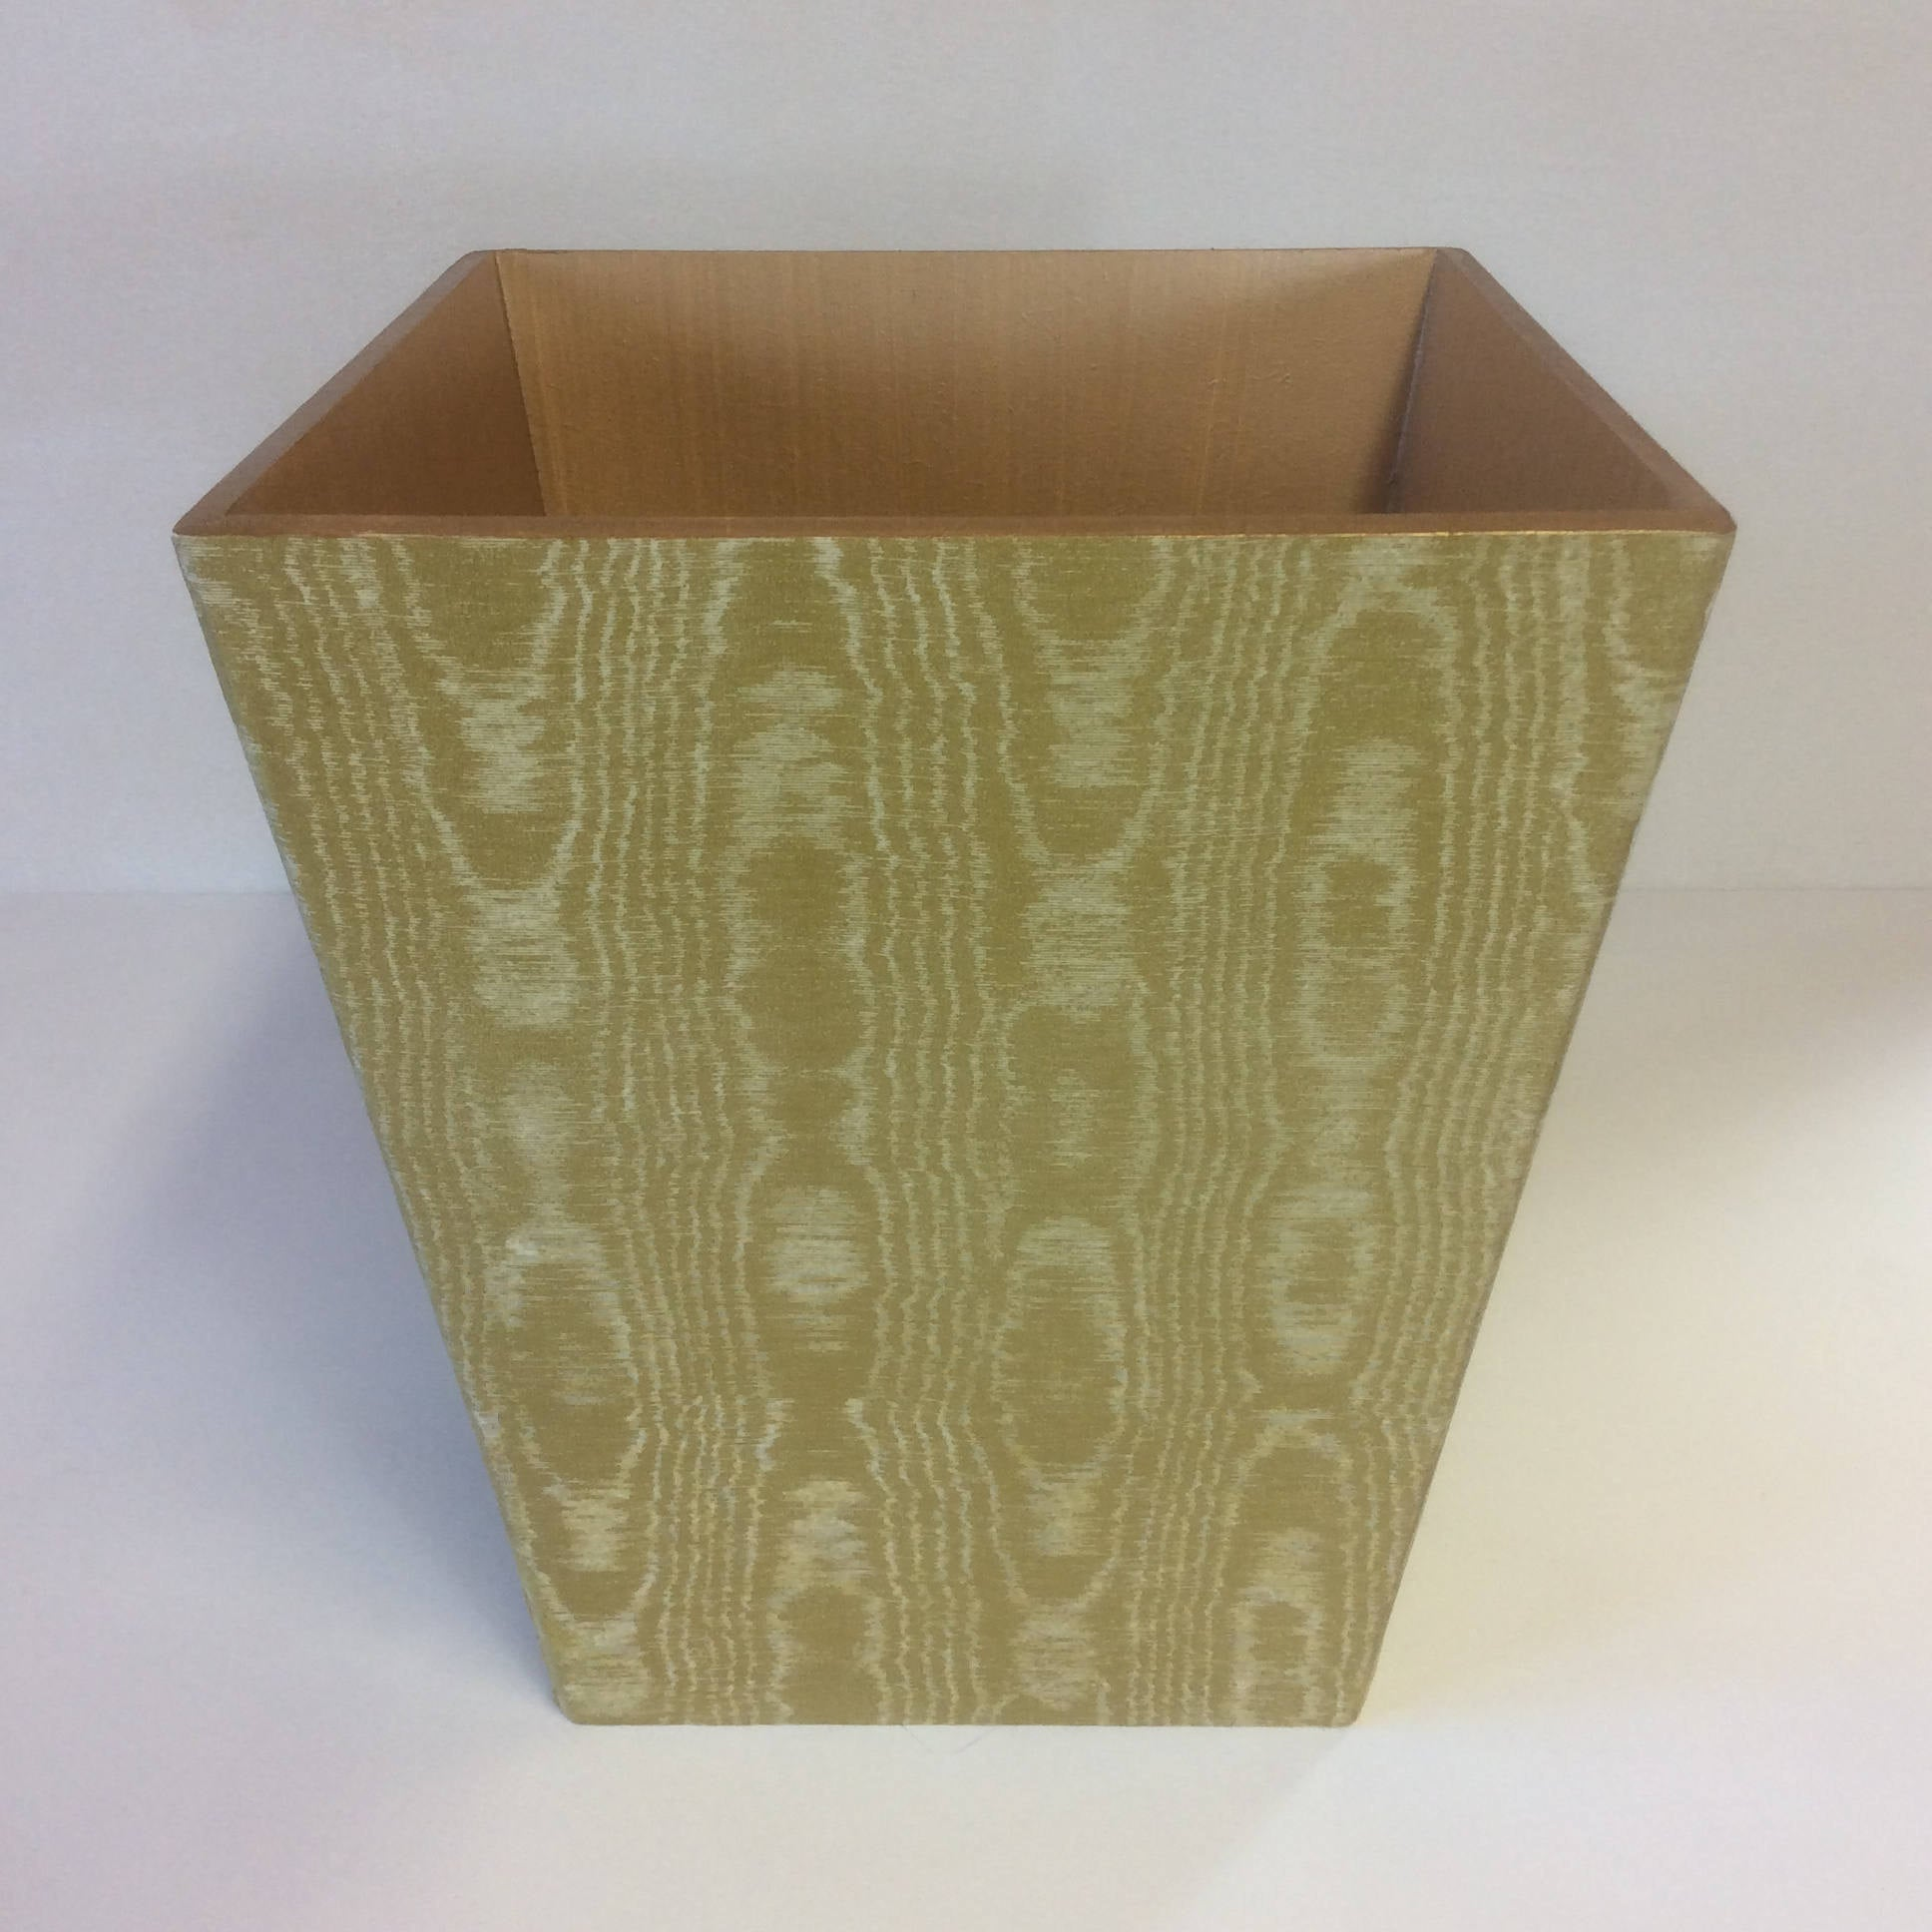 Luxury Gold Waste Paper Bin - Handmade